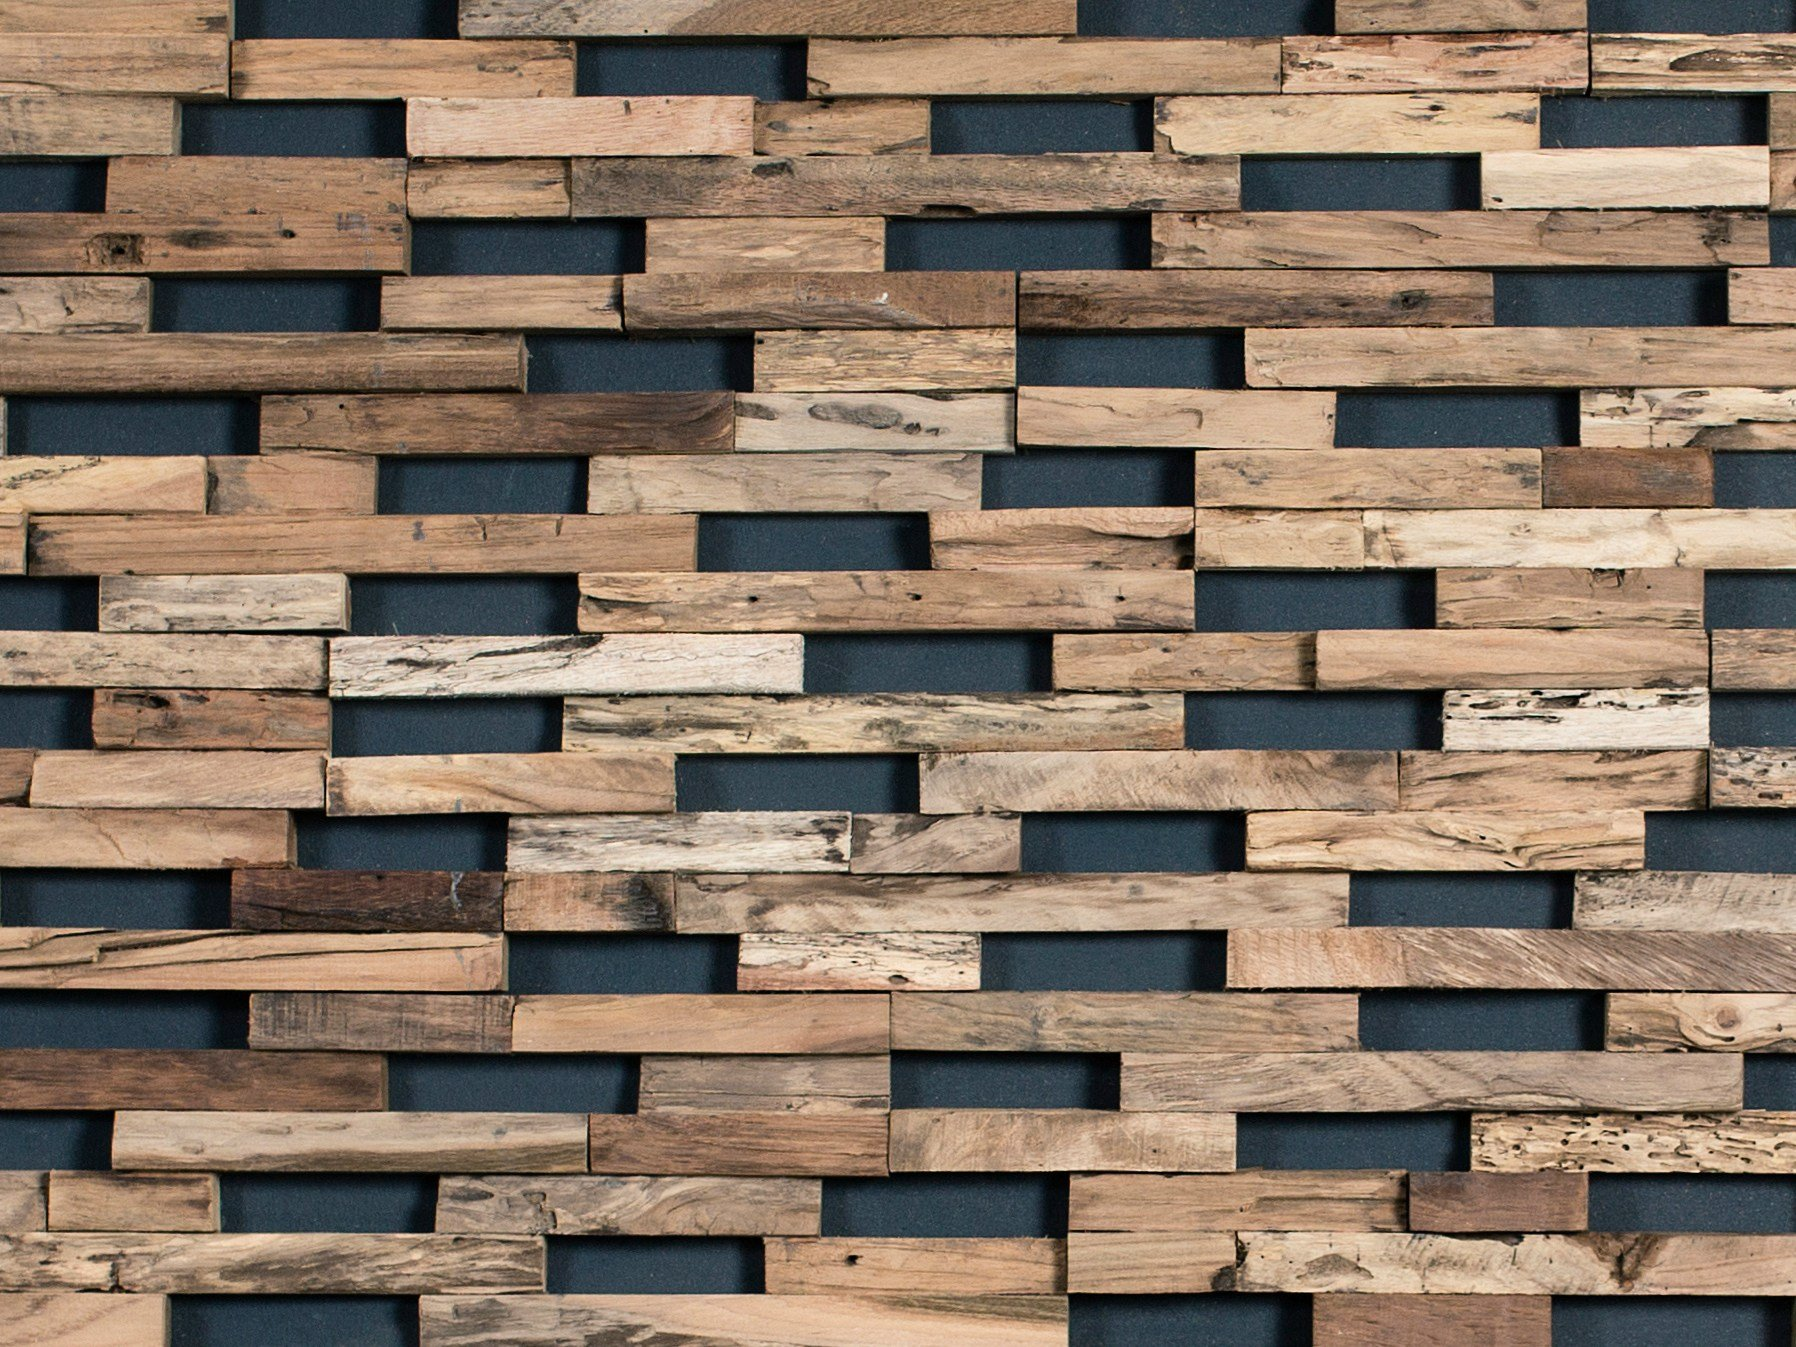 Outdoor Wooden 3d Wall Cladding Train By Wonderwall Studios